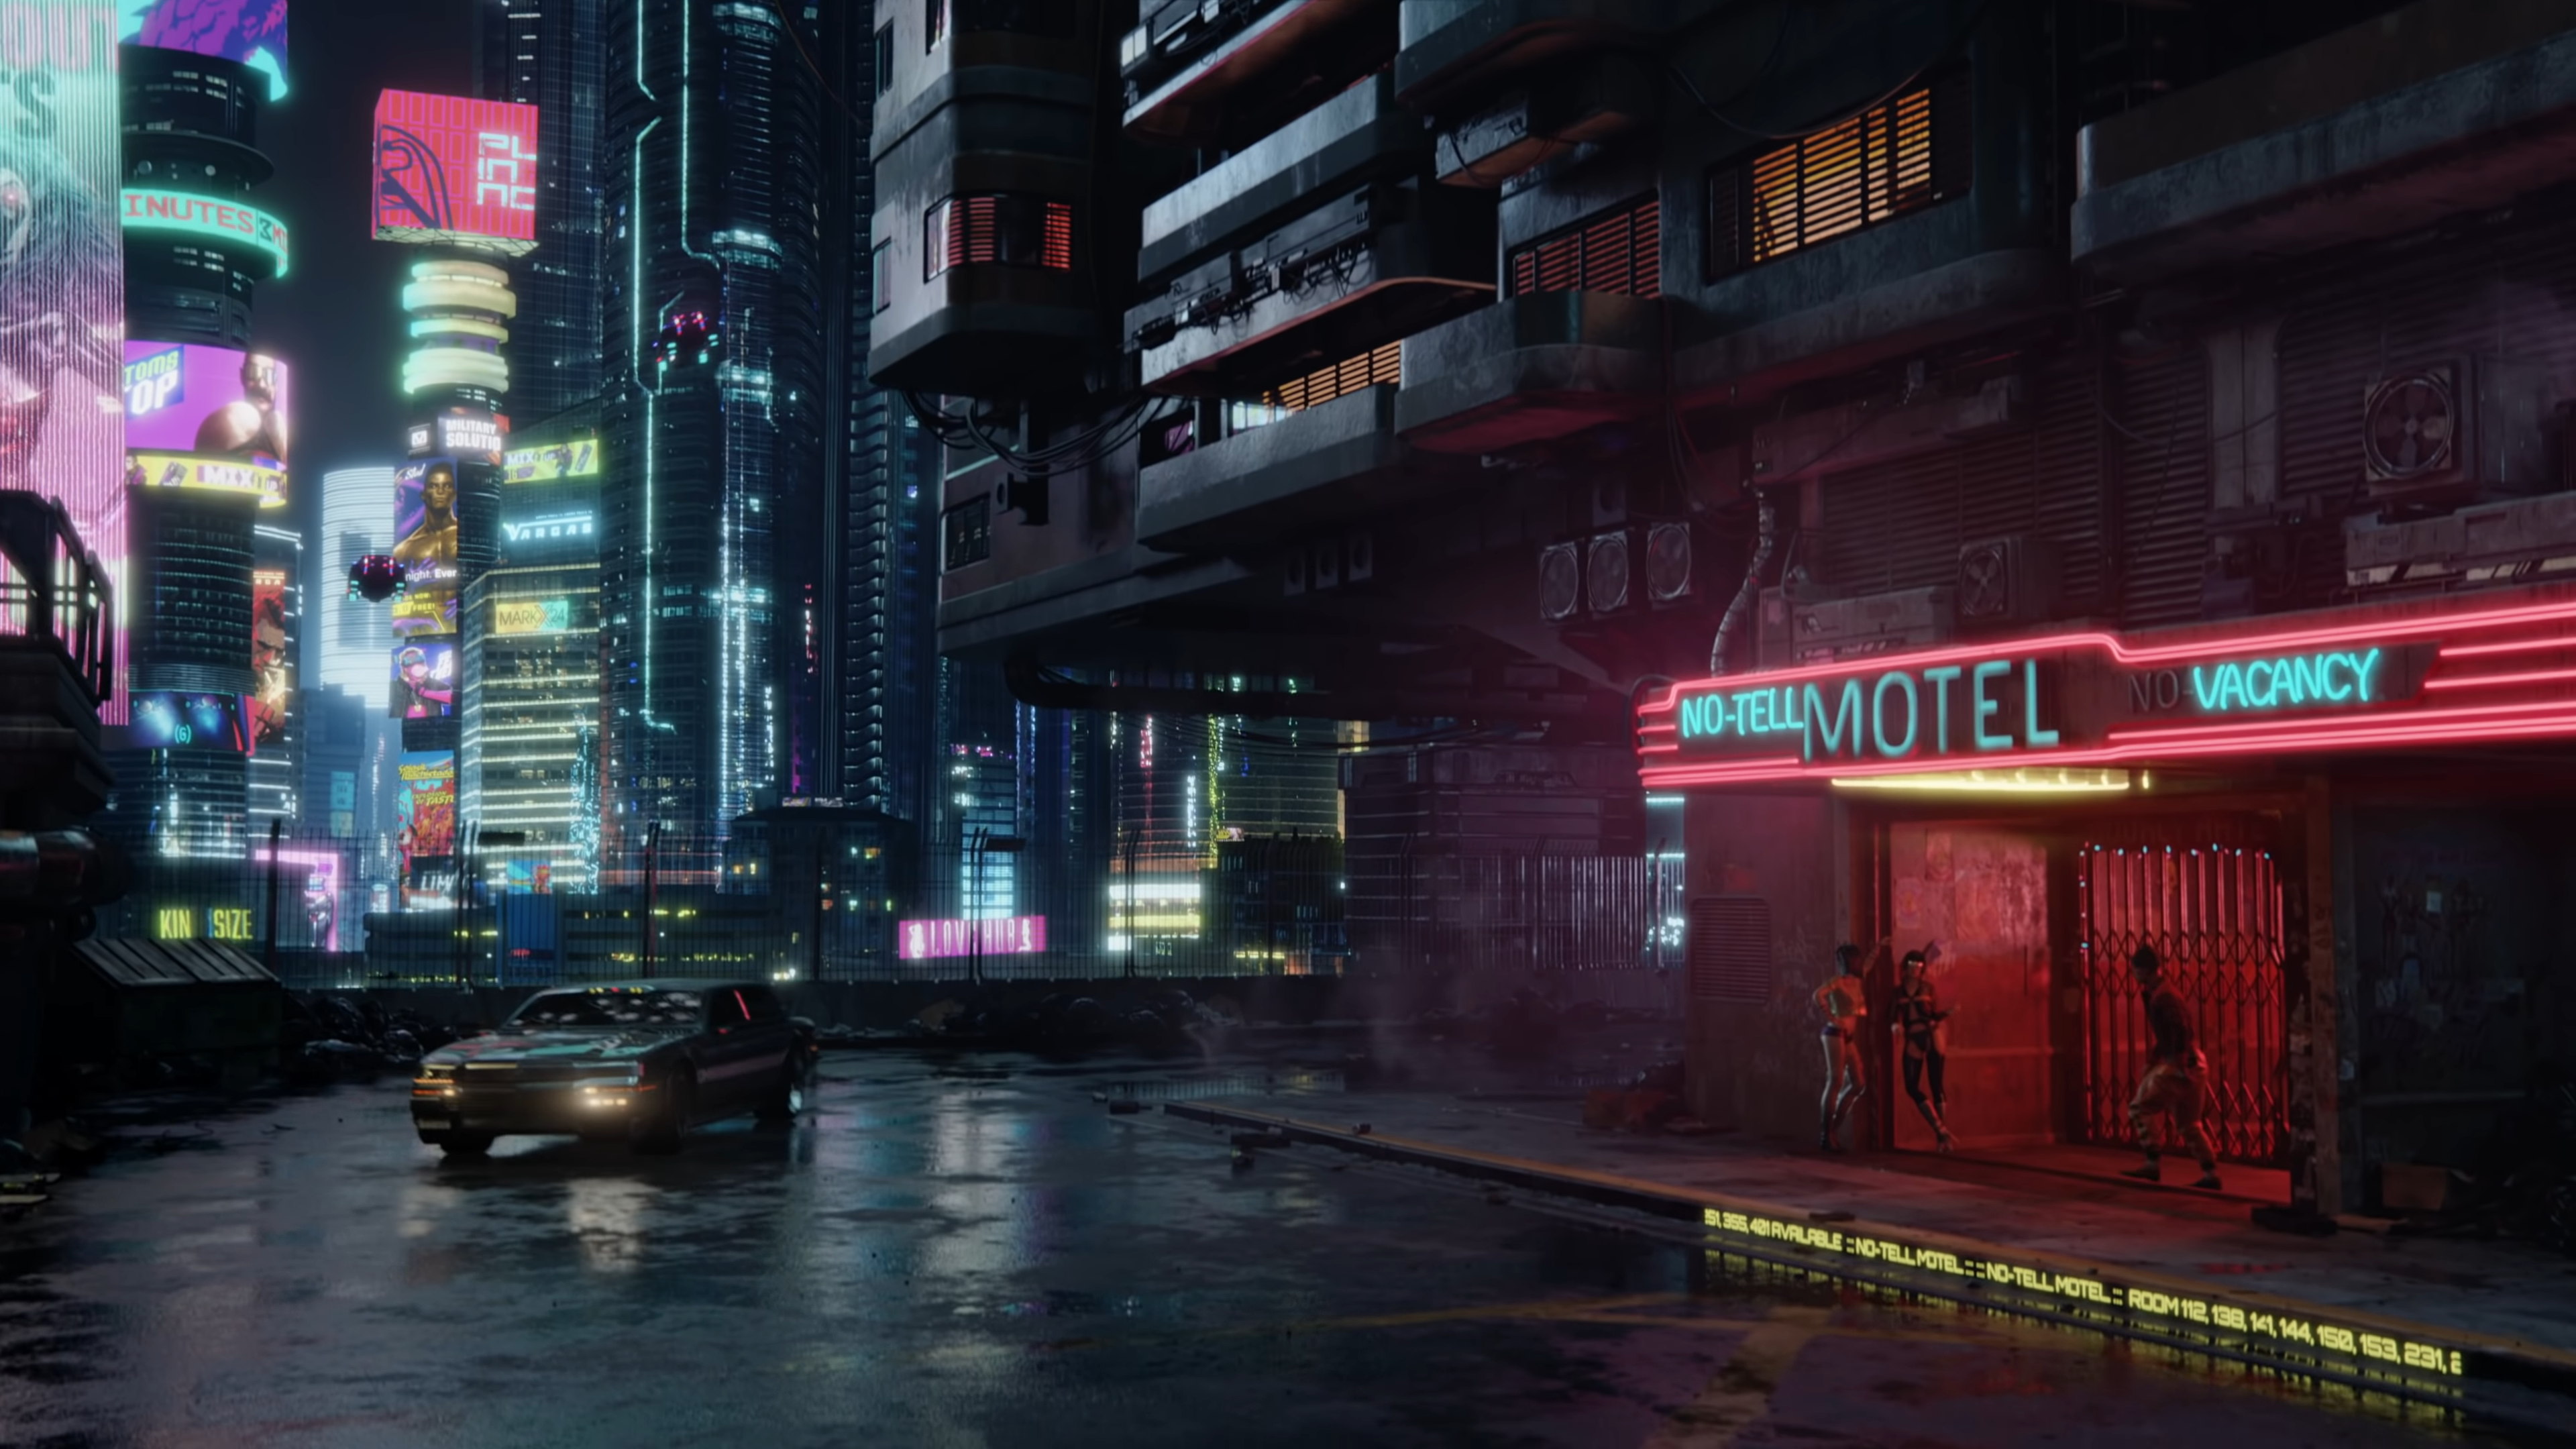 Advertising Ticker On Curb Cyberpunk 2077 Cyberpunk 2077 Cyberpunk City Cyberpunk